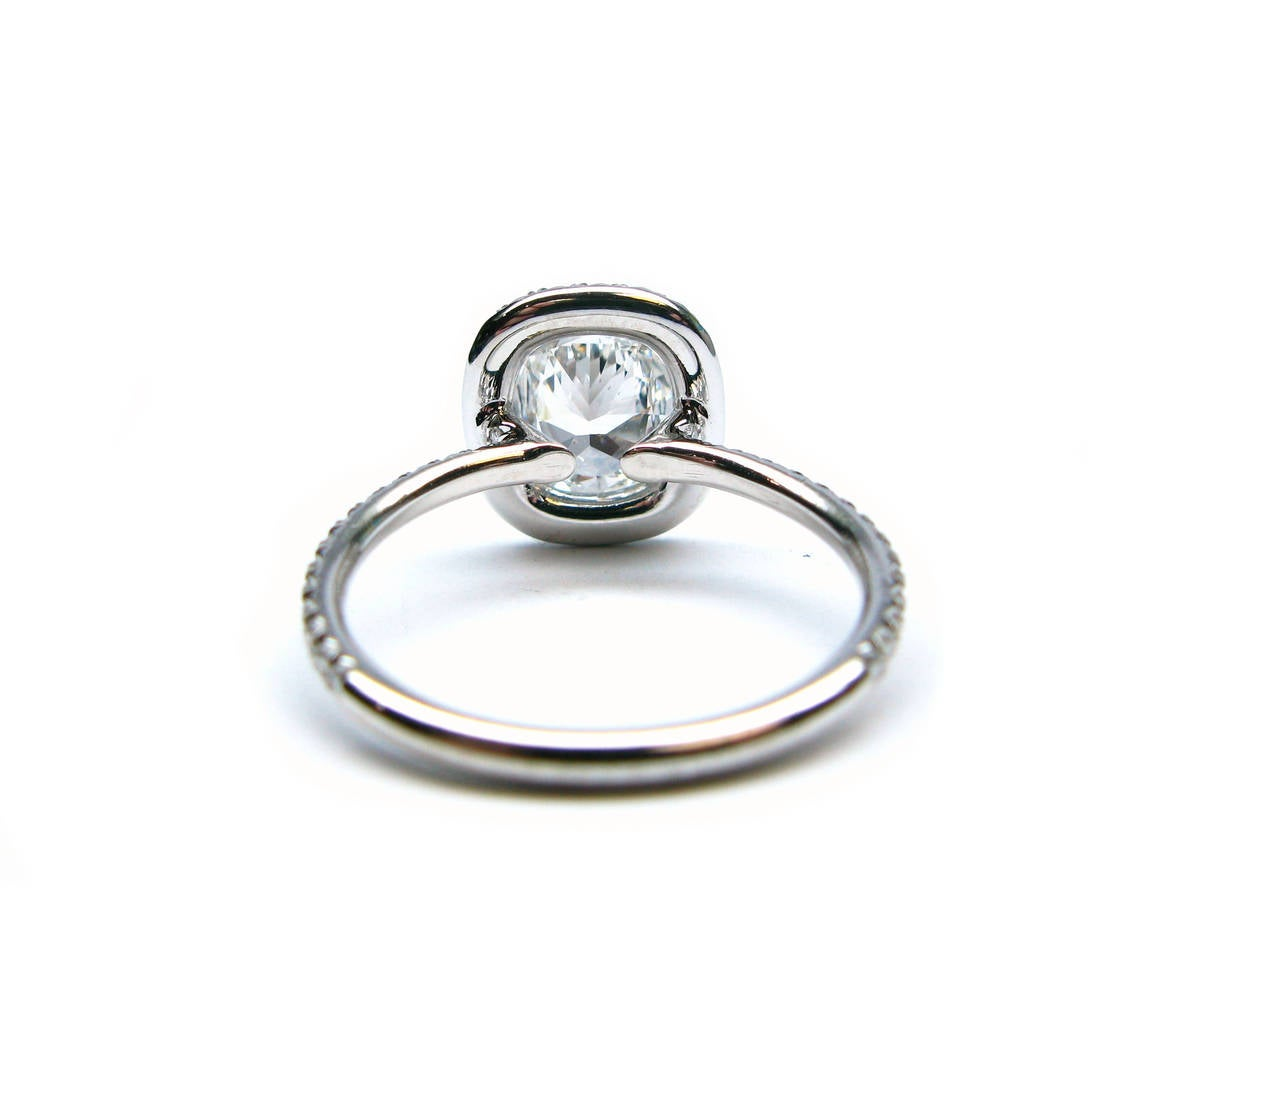 1.12 Carat Cushion Cut Diamond Platinum Ring In As new Condition For Sale In New York, NY